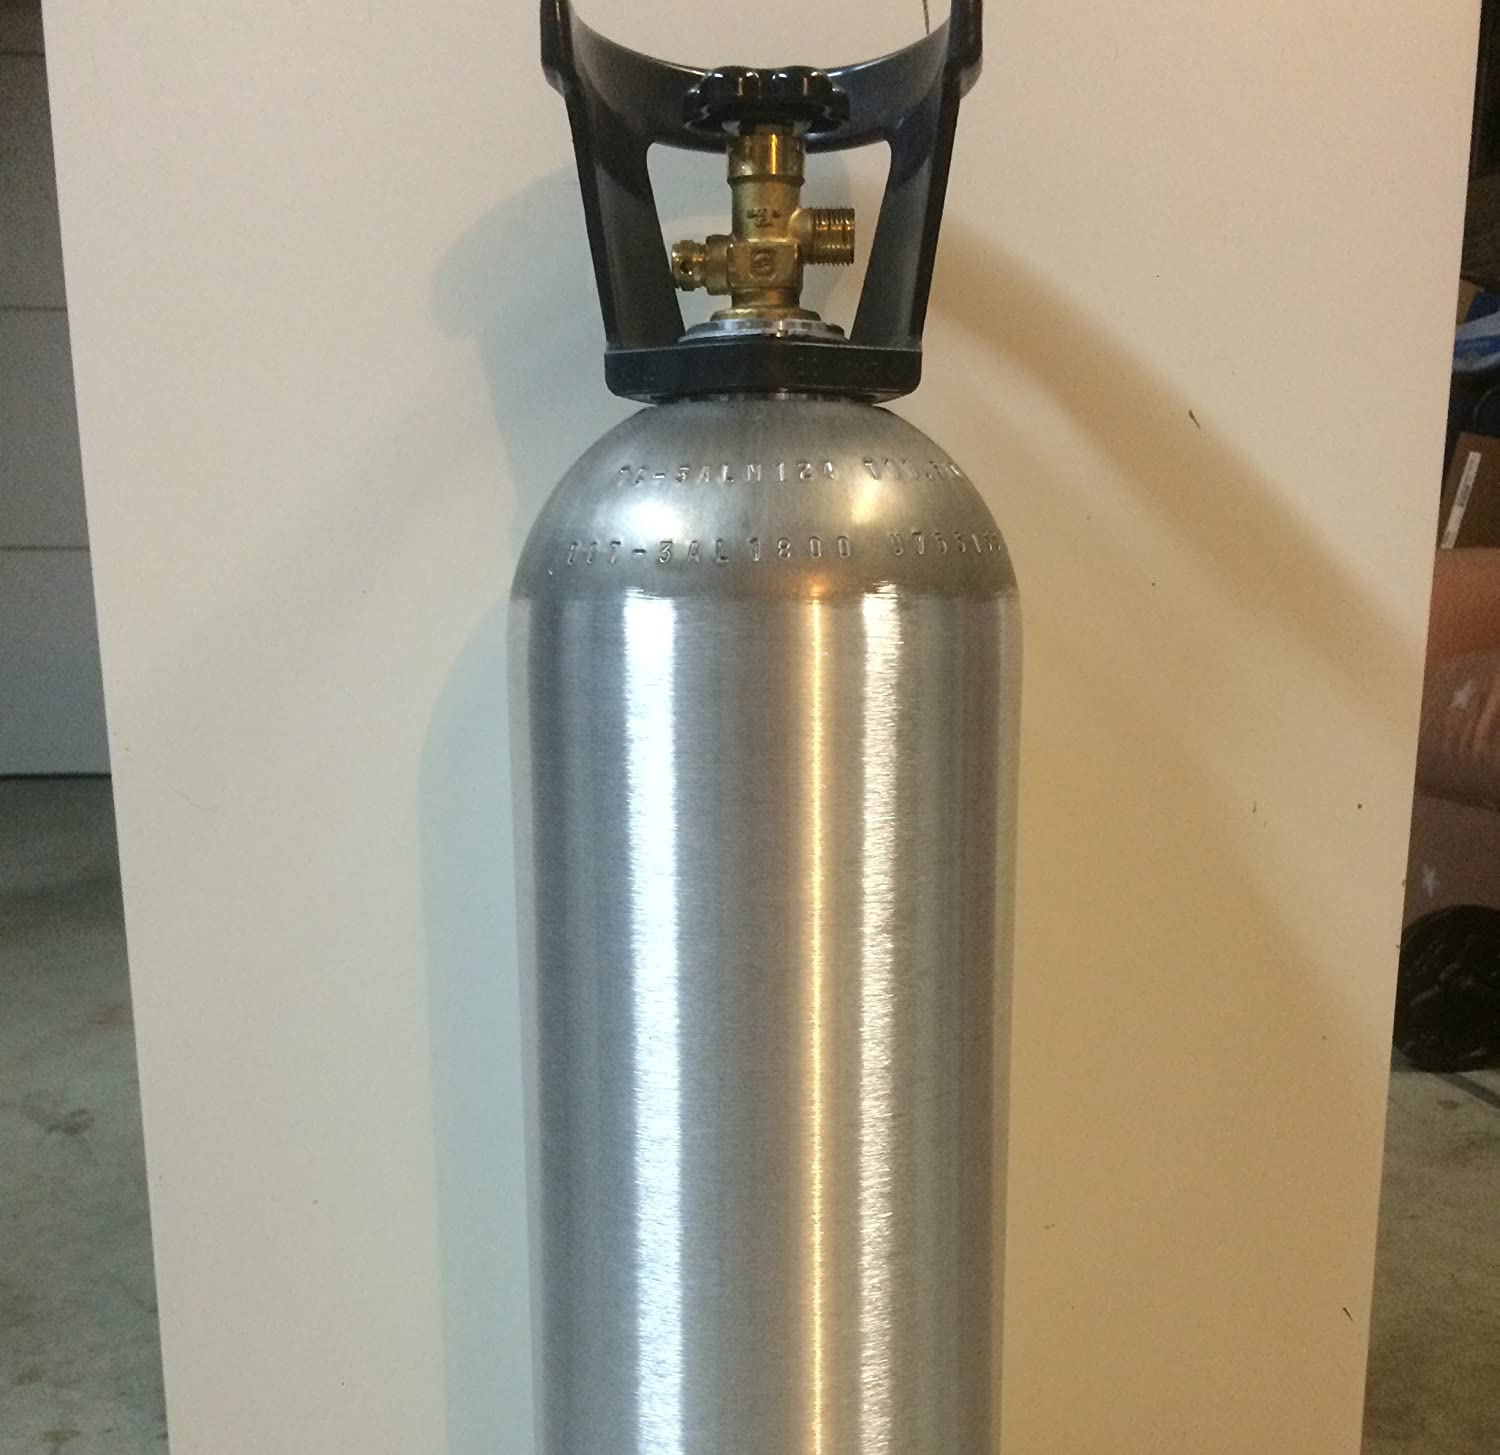 The Best Co2 Cylinders With Cga320 Valve For Sodastream photo